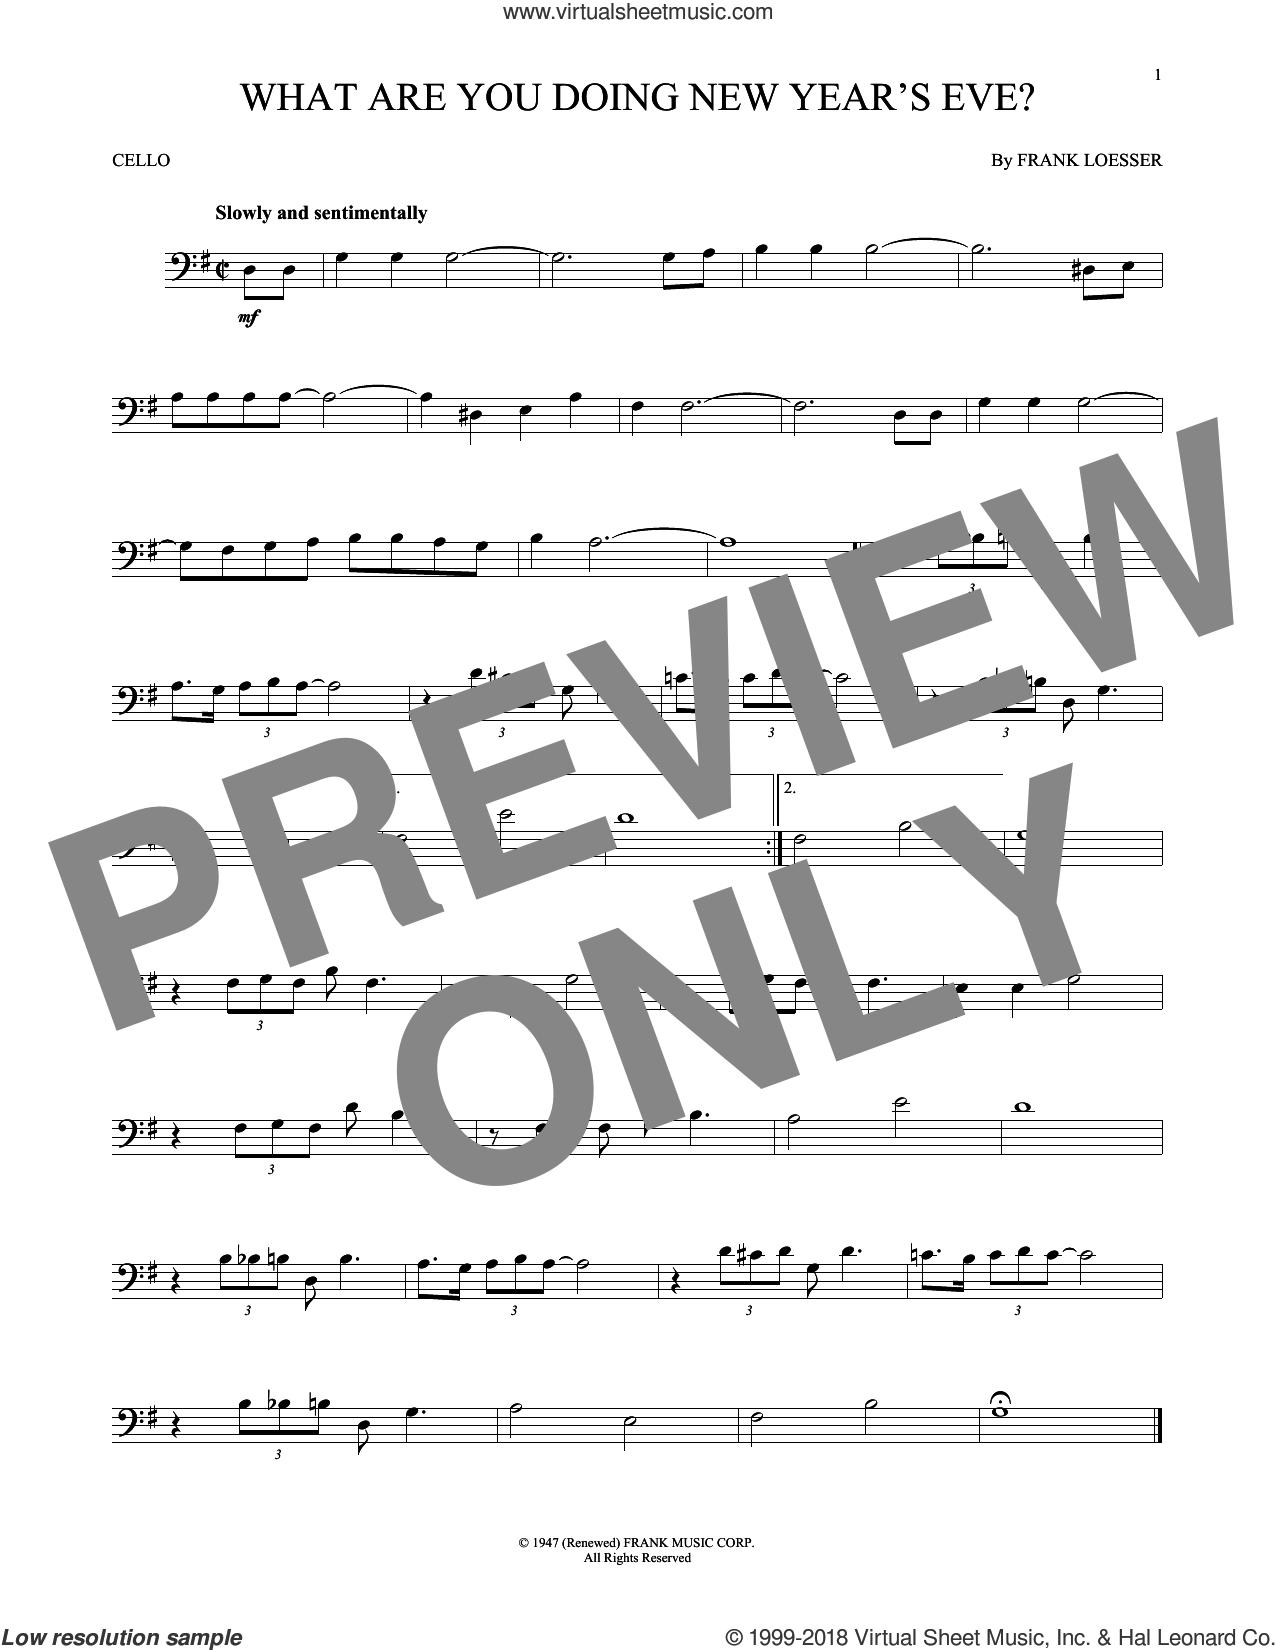 What Are You Doing New Year's Eve? sheet music for cello solo by Frank Loesser, intermediate skill level